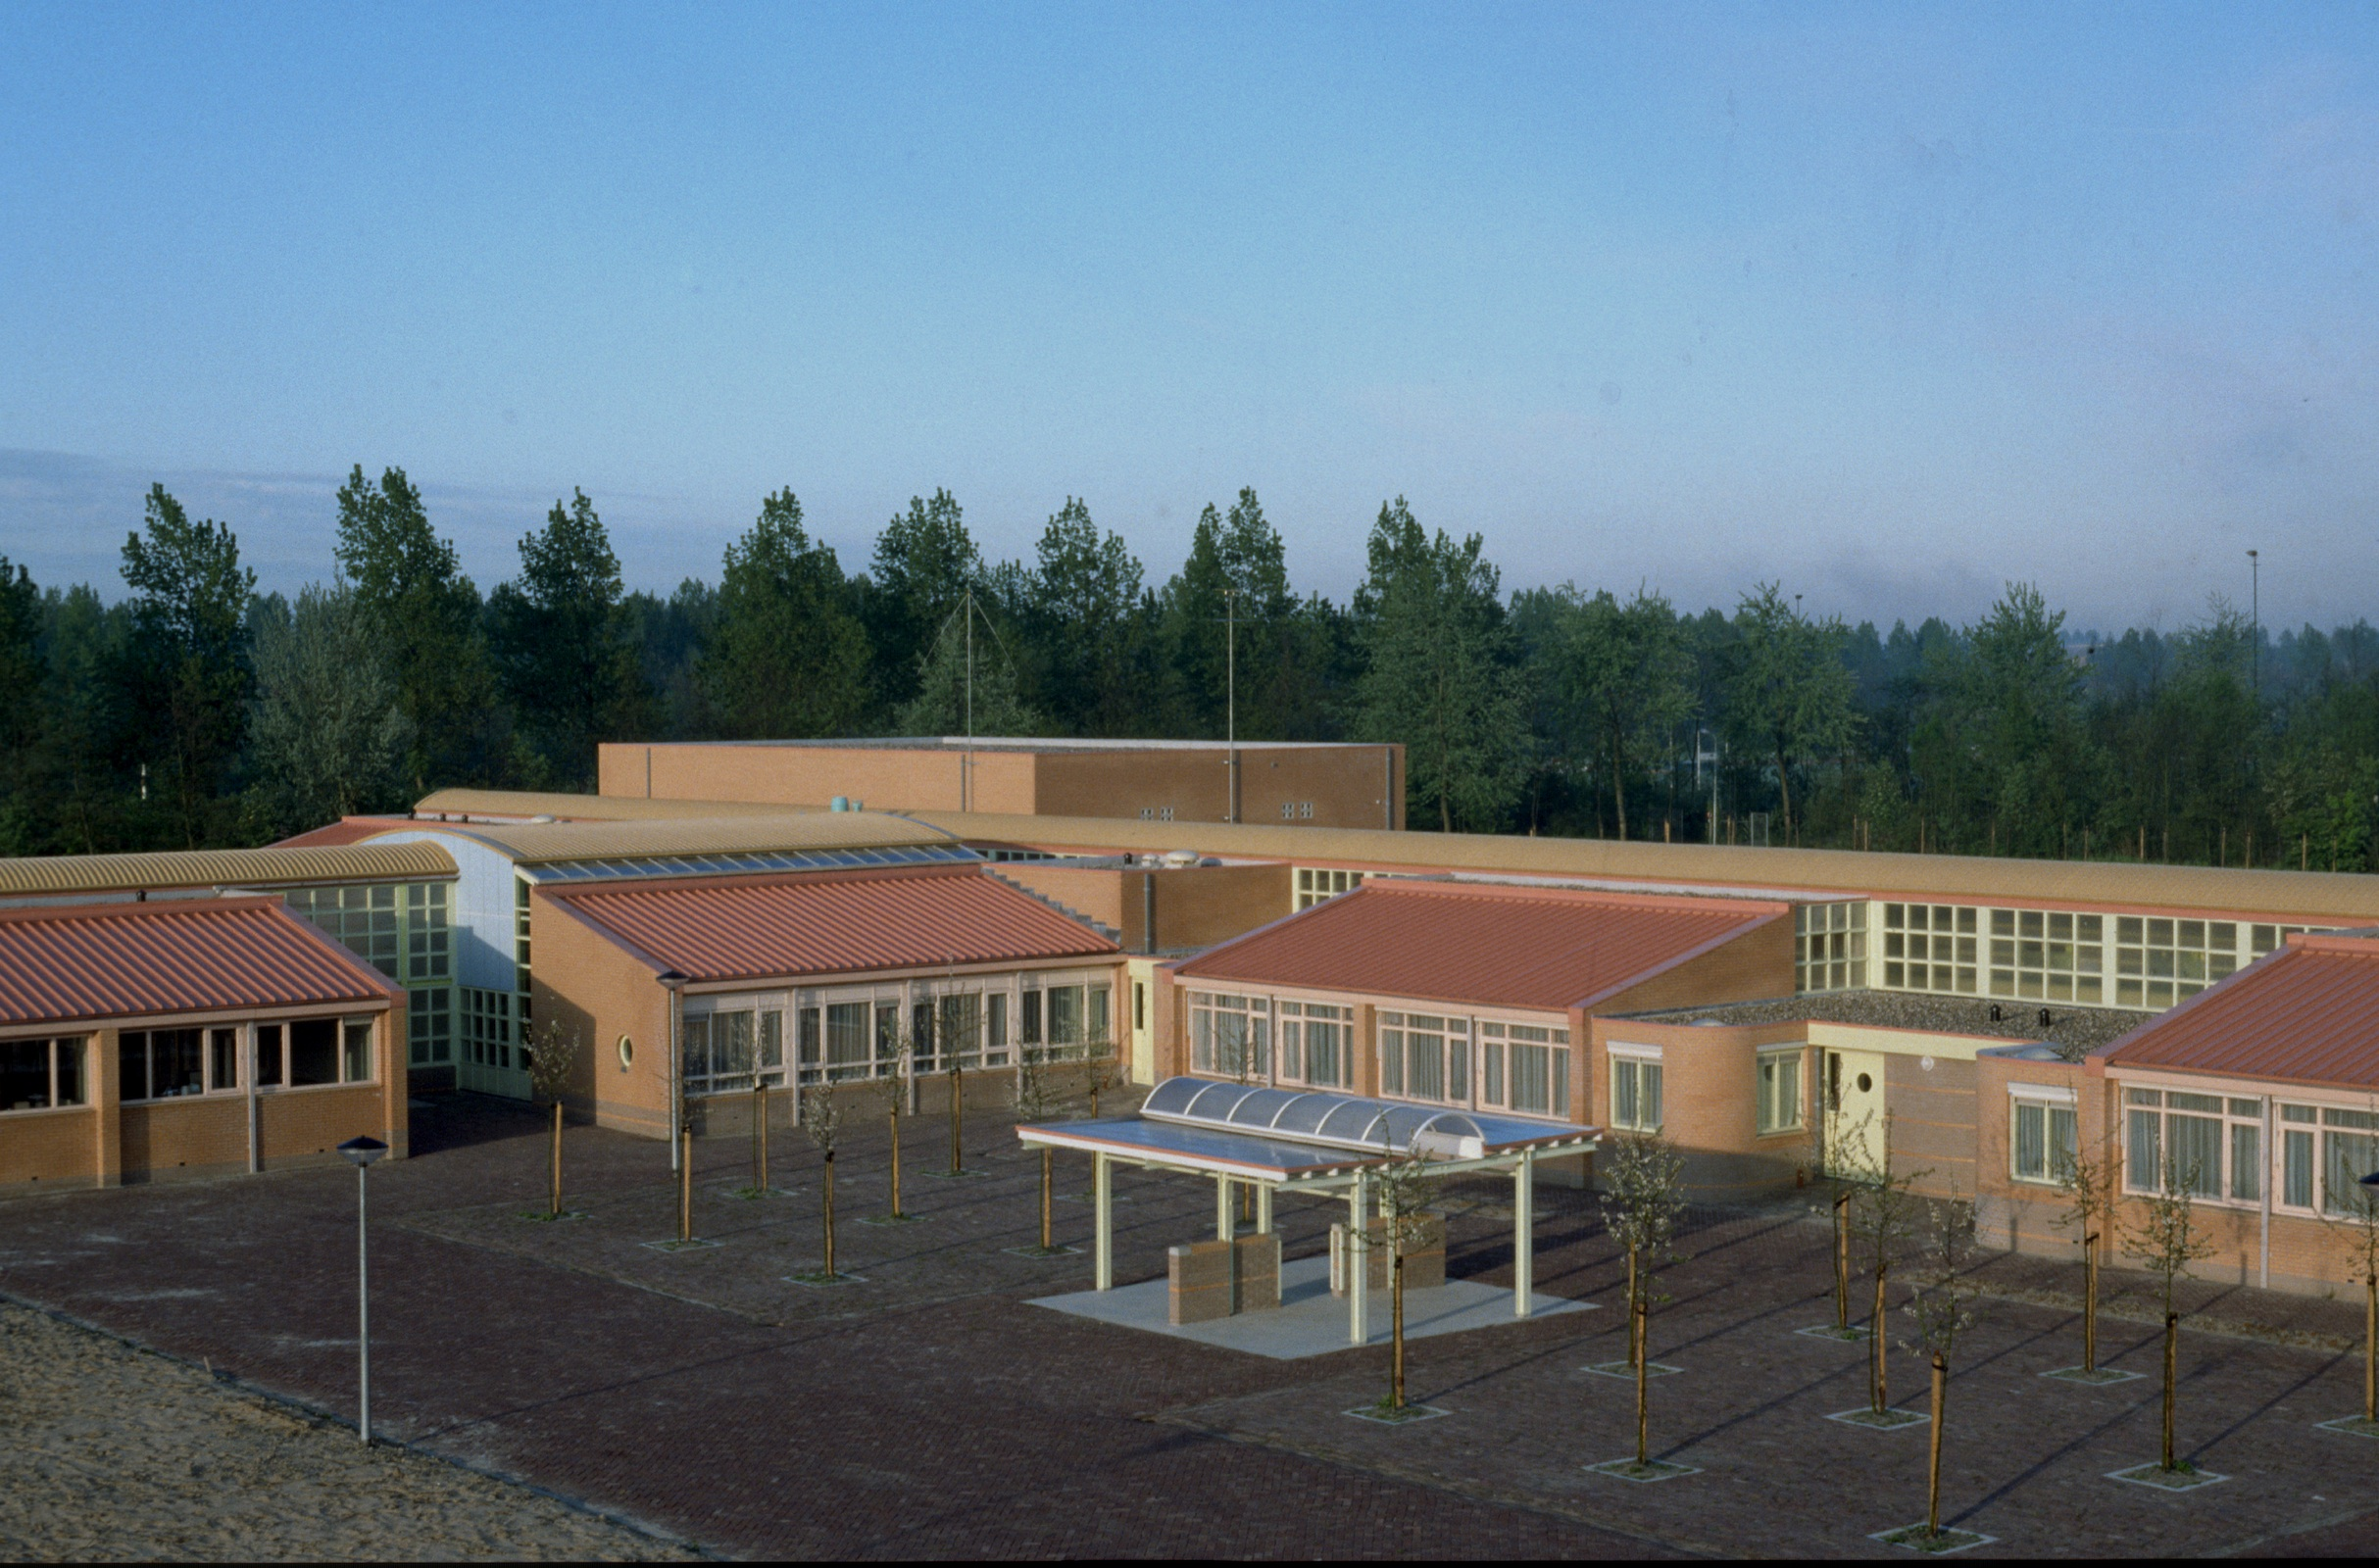 File:Correctional Boarding School Heerhugowaard.jpg - Wikimedia Commons